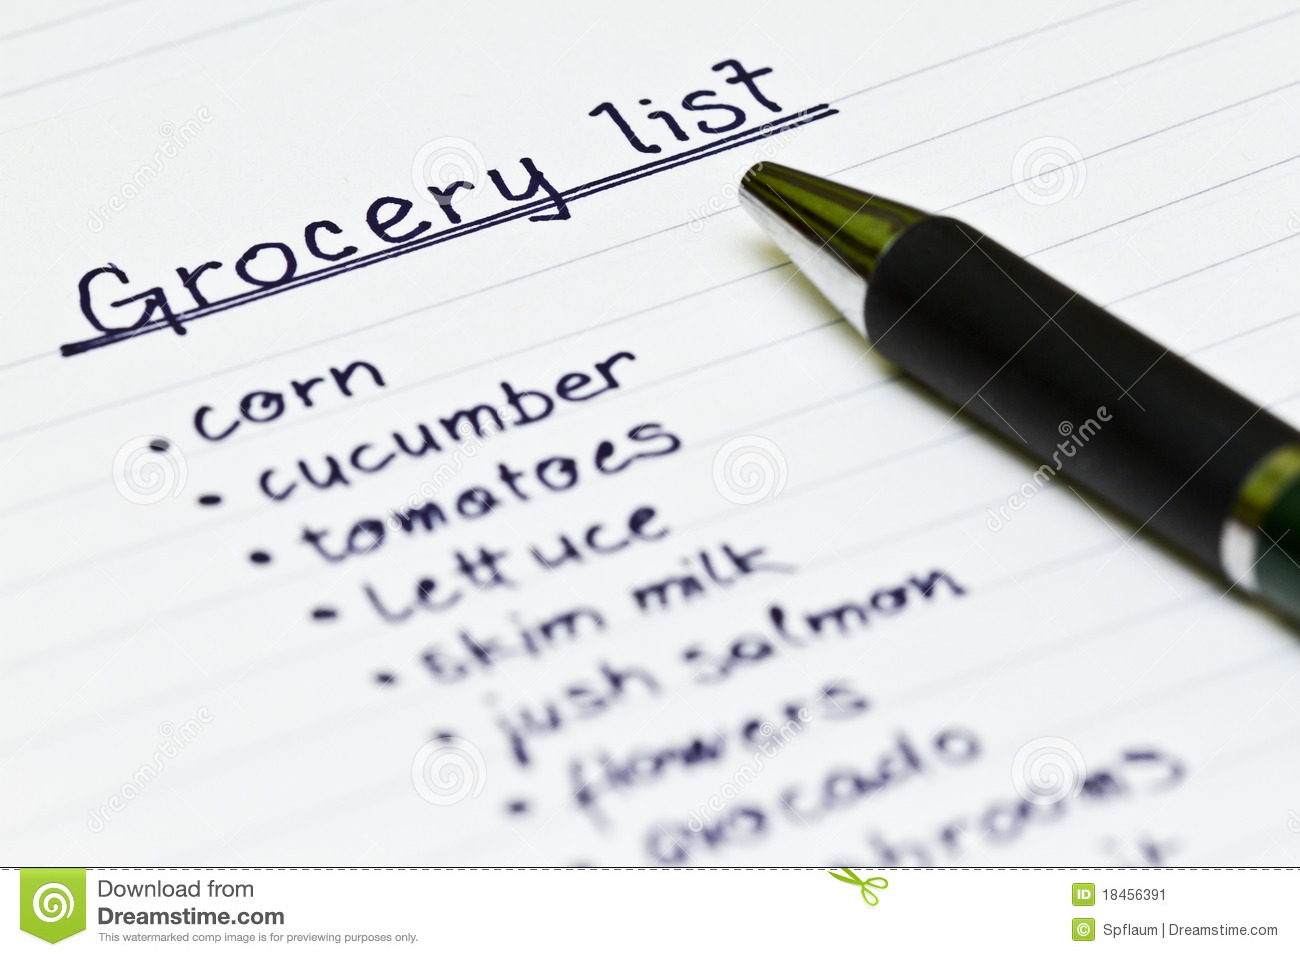 Grocery list clipart 6 » Clipart Station.